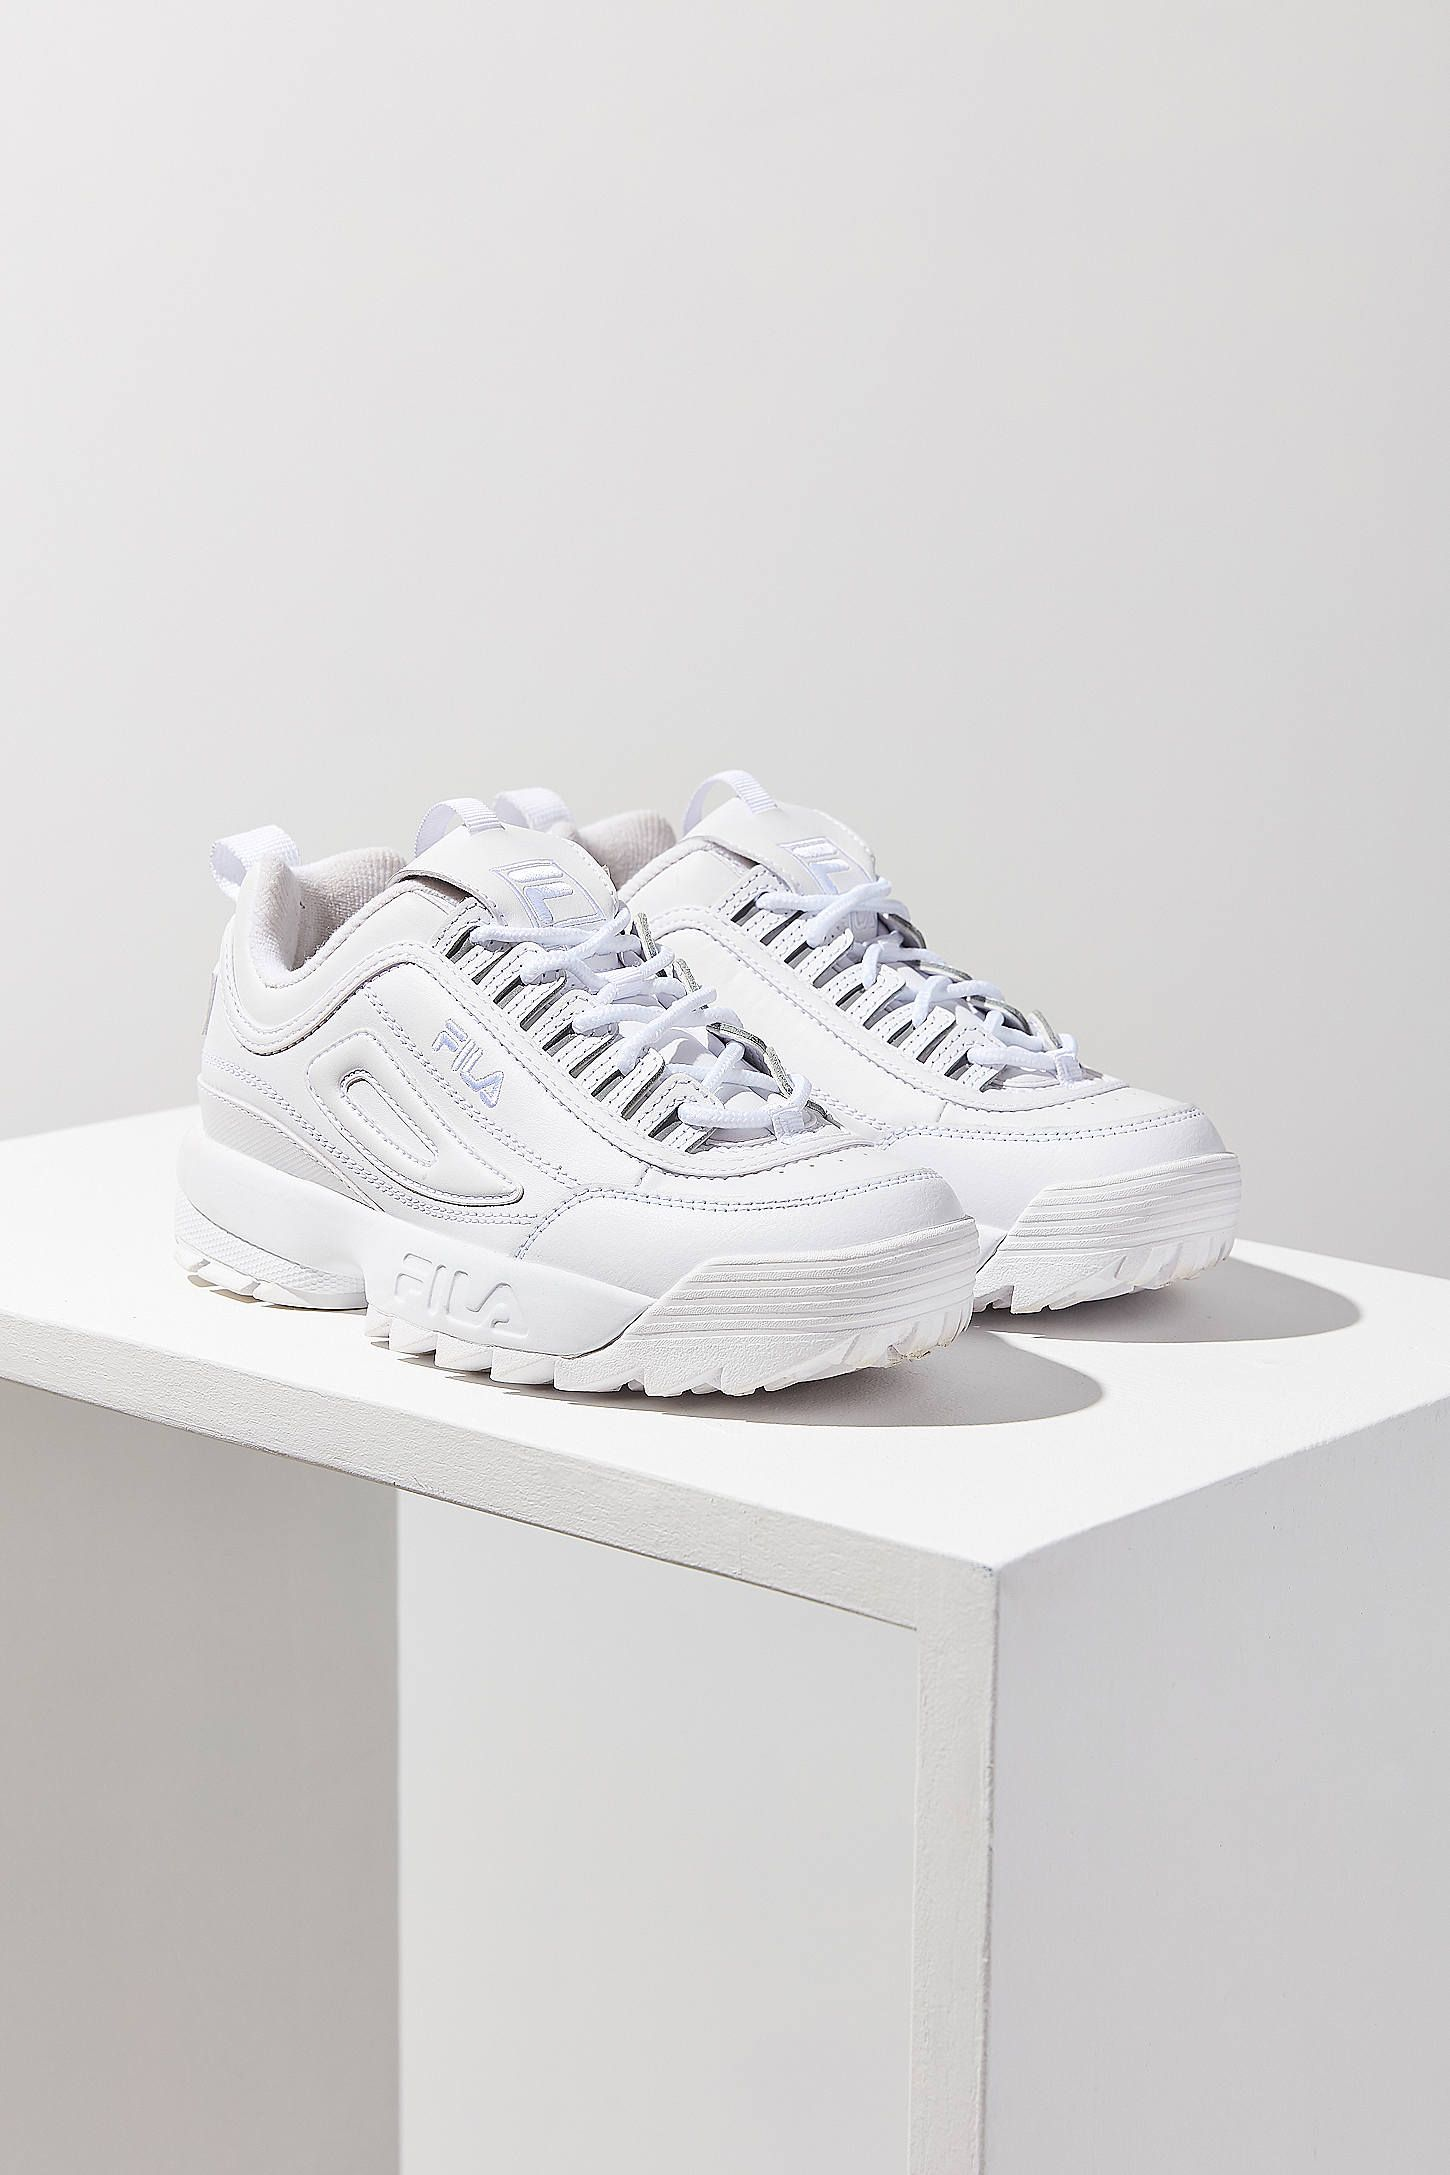 228976ead3a4 Shop FILA Disruptor 2 Premium Mono Sneaker at Urban Outfitters today. We  carry all the latest styles